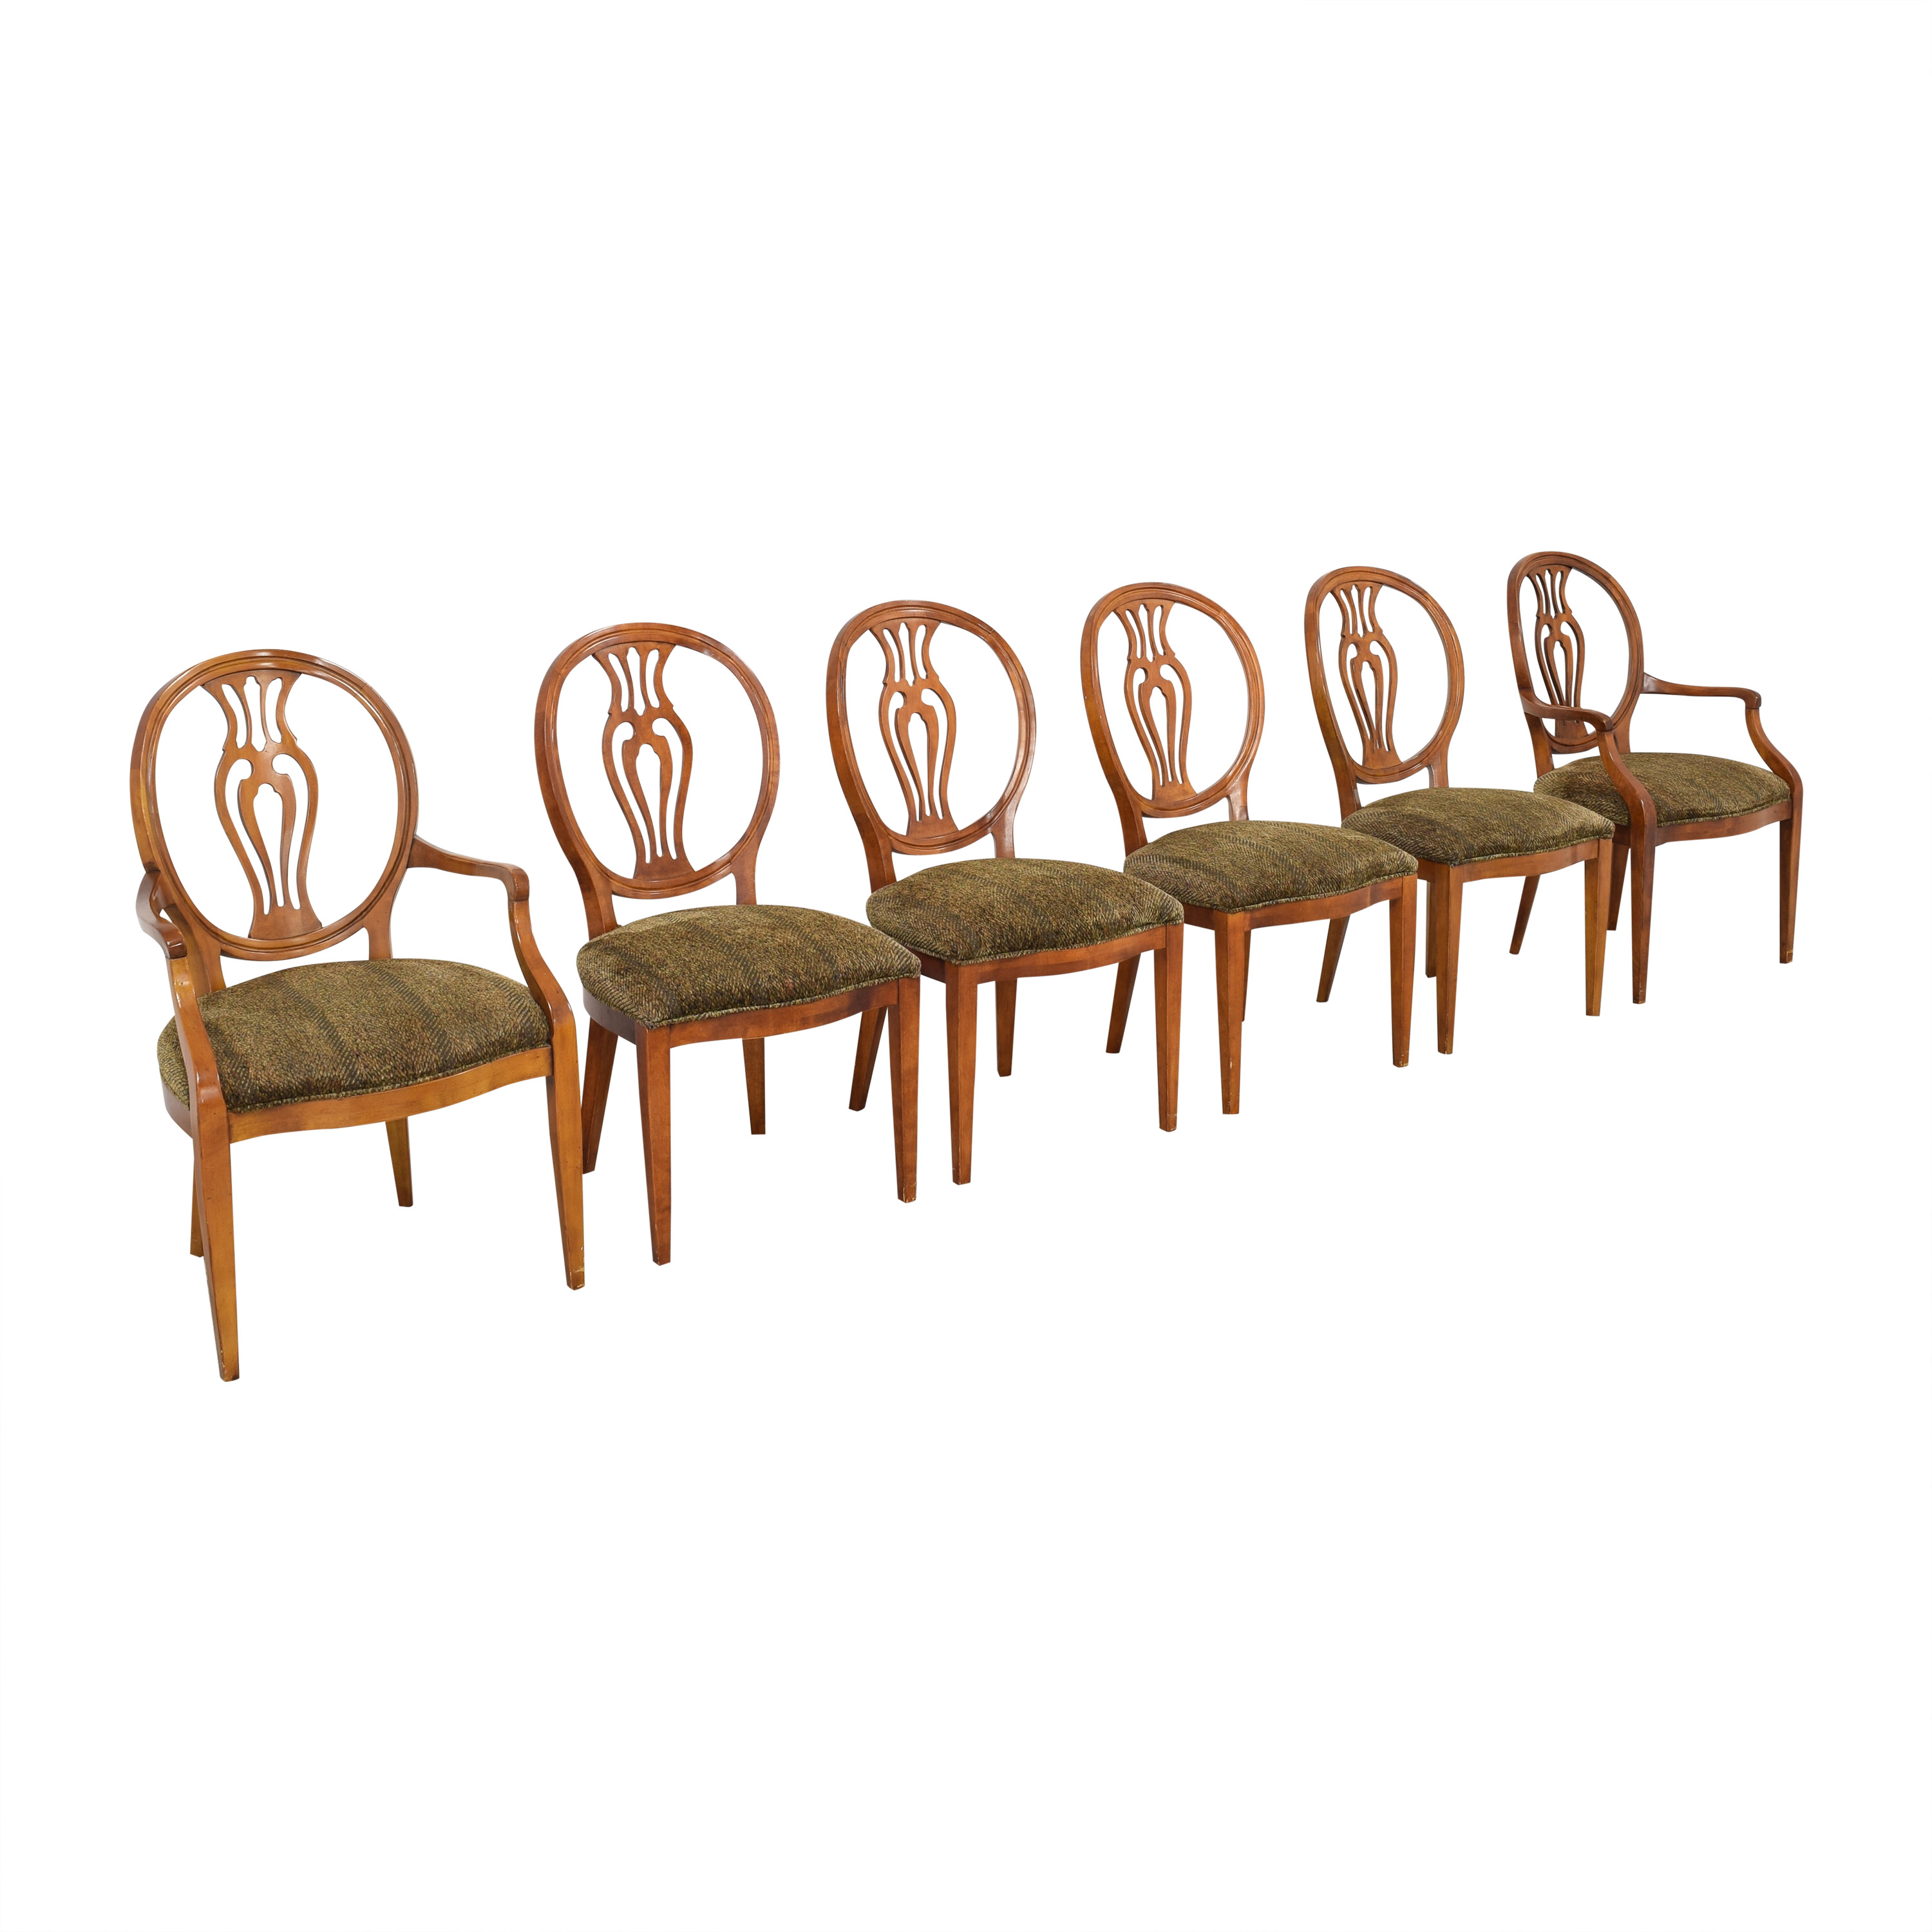 Henredon Furniture Herendon French Pierce Balloon Back Dining Chairs